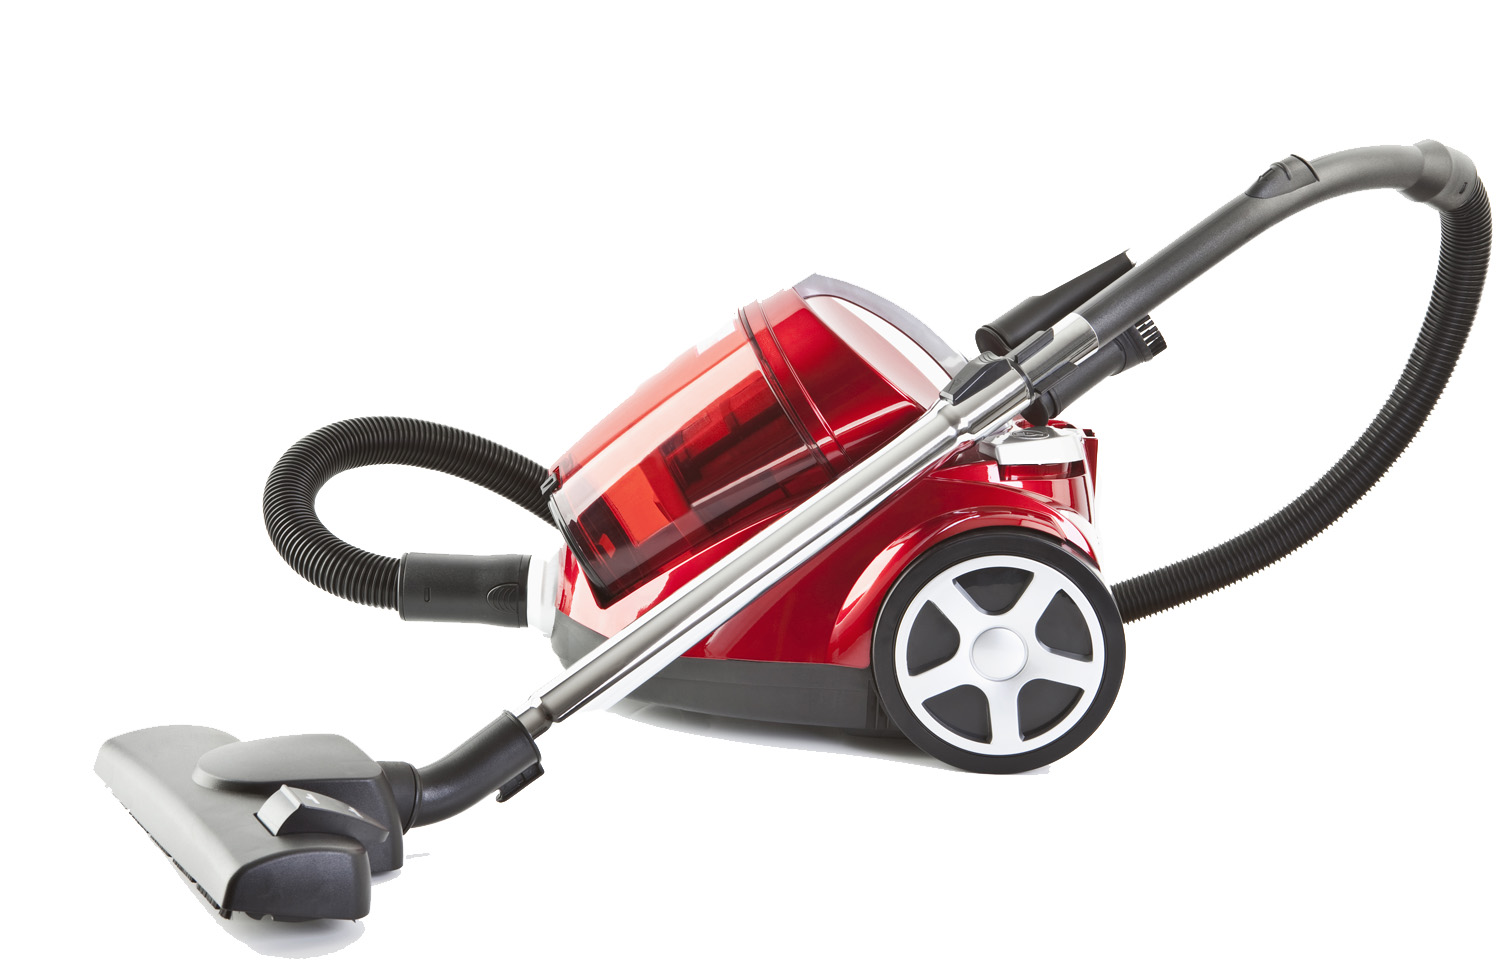 Dust off the cobwebs - With a full-size vacuum cleaner kept just for car cleaning, along with cleaner and conditioner for your dashboard and seats, you can make sure the inside of your car is ready for the rest of your journey.